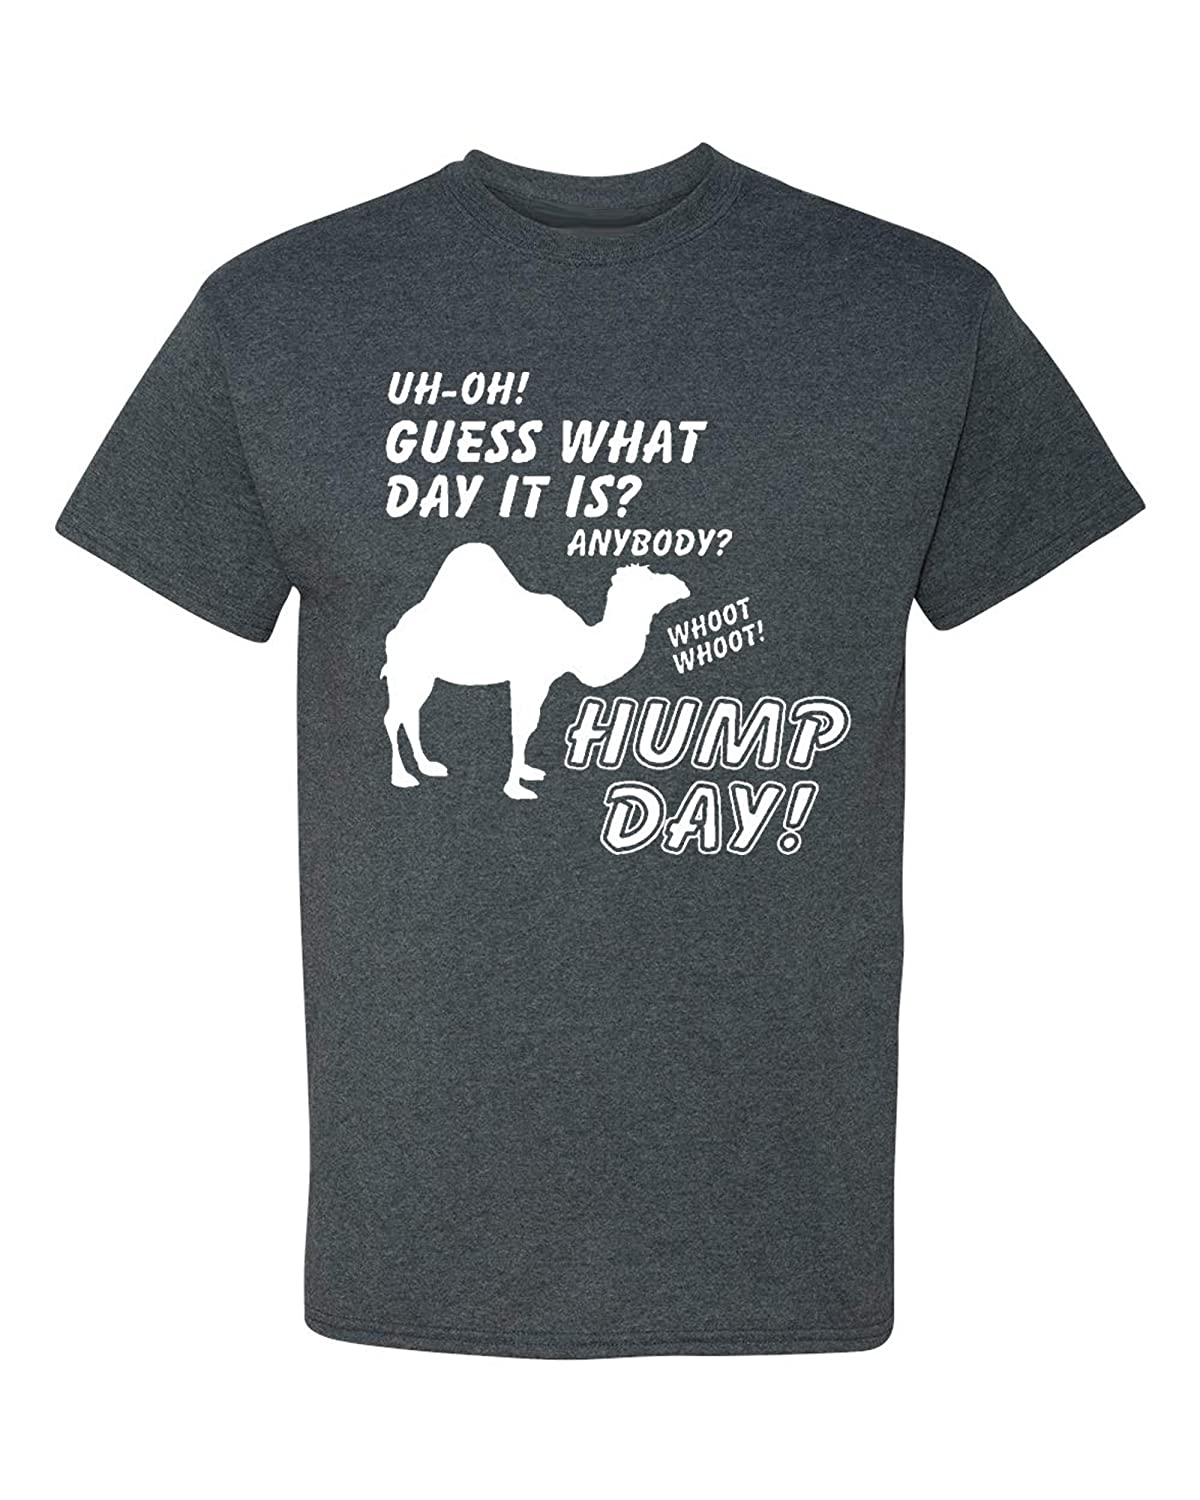 21d21326 Amazon.com: New Hump Day! Camel Adult Funny T-Shirt Tee: Clothing